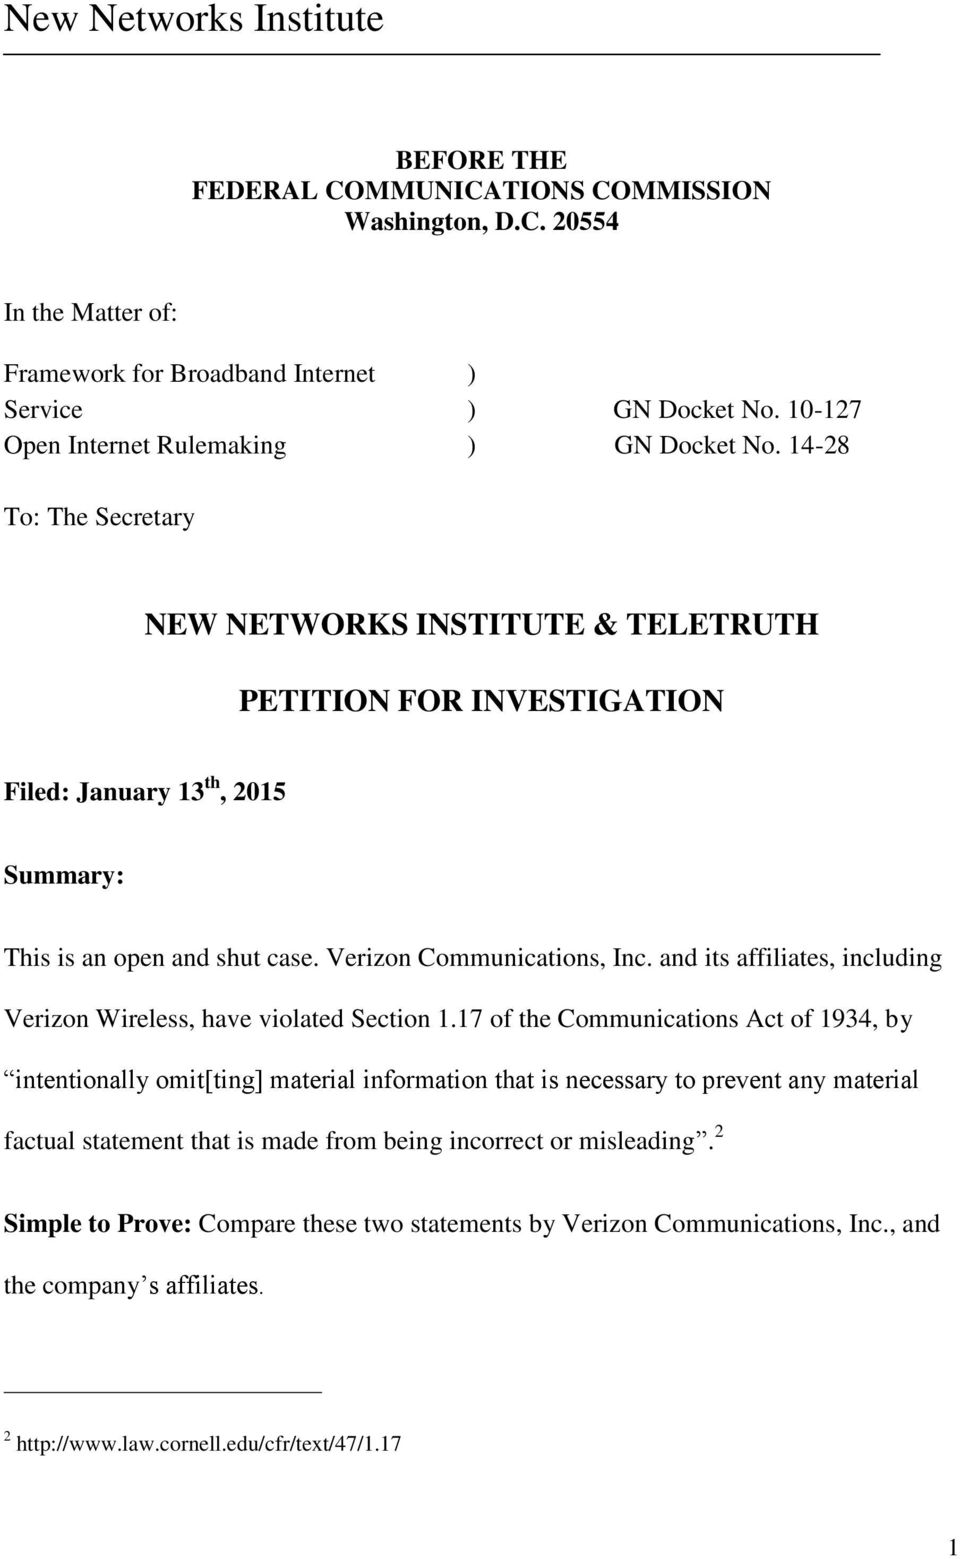 and its affiliates, including Verizon Wireless, have violated Section 1.